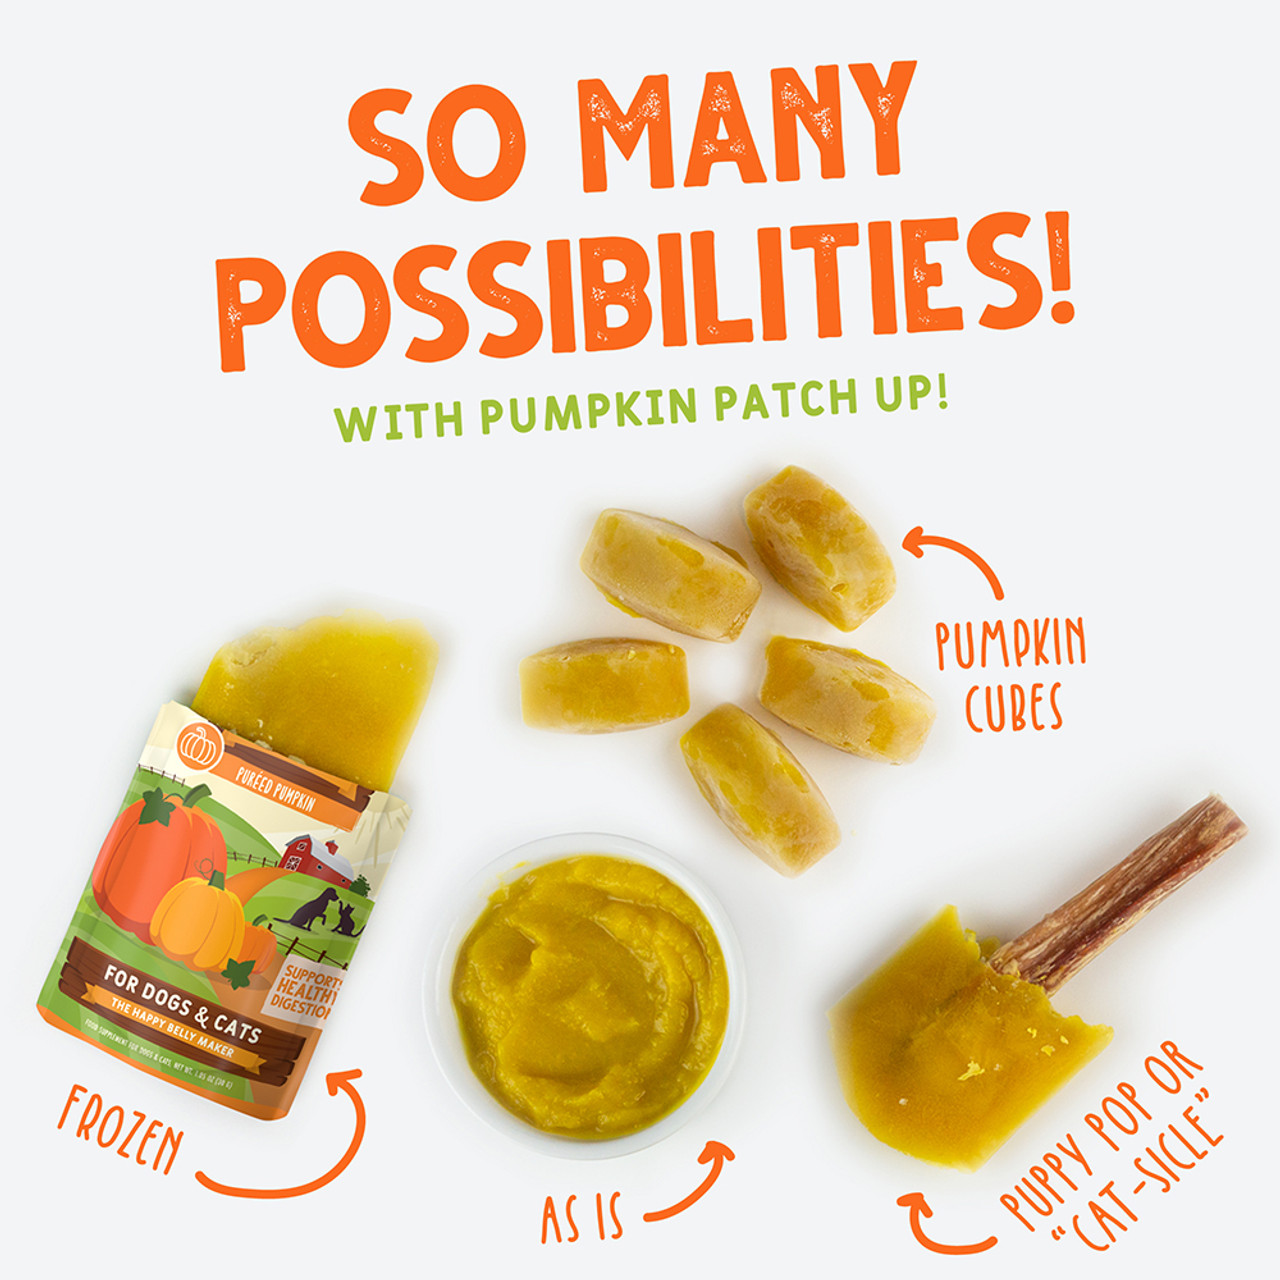 So Many Possibilities With Pumpkin Patch Up!